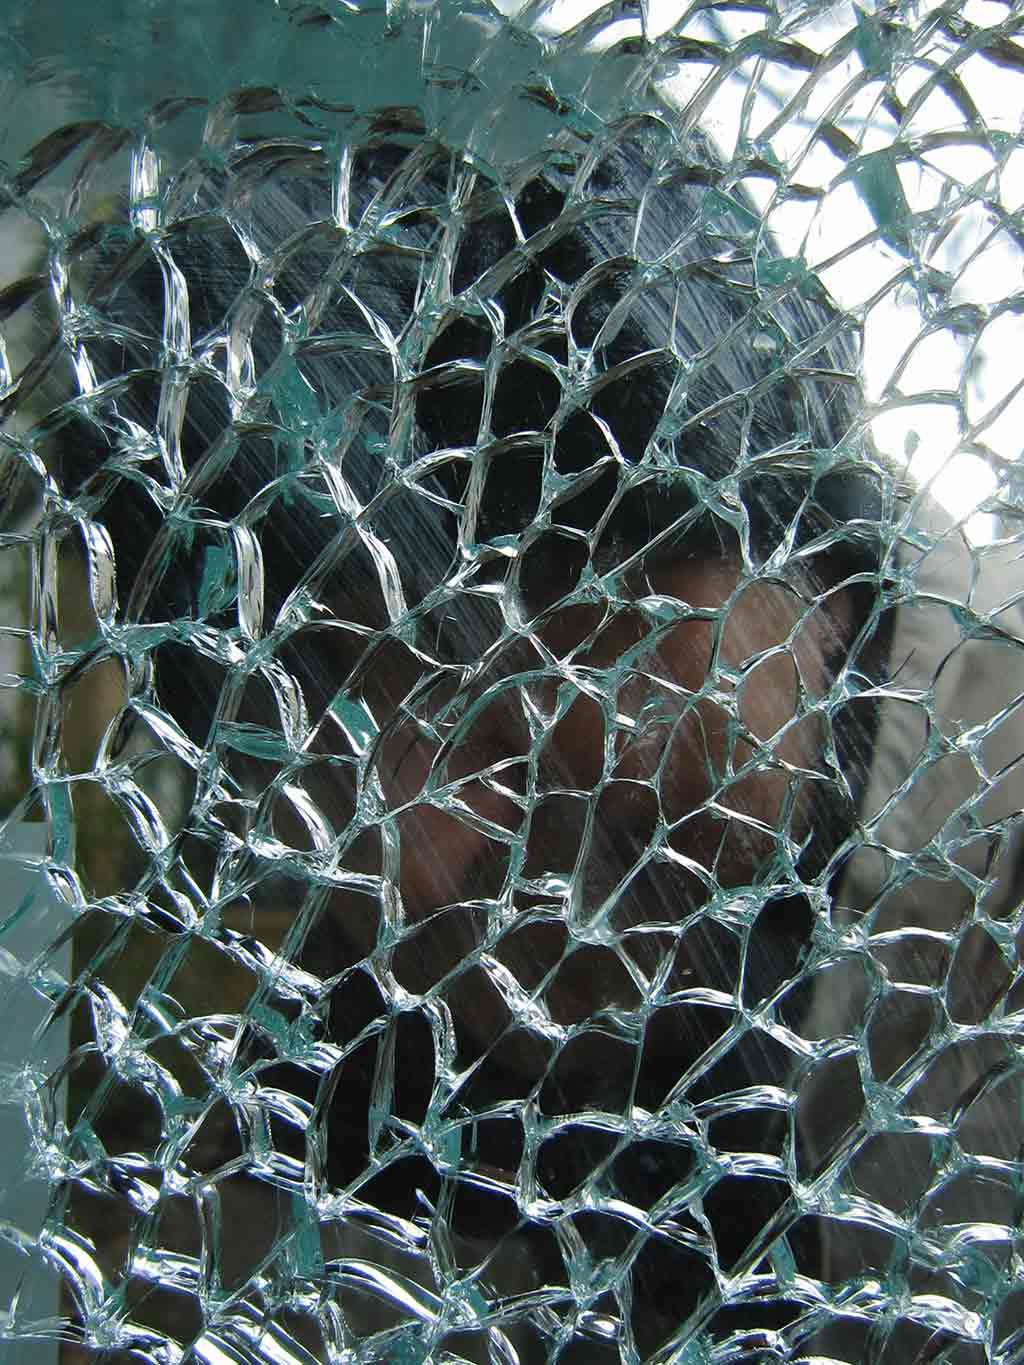 >Broken glass window photo by Wieslaw Sadurski